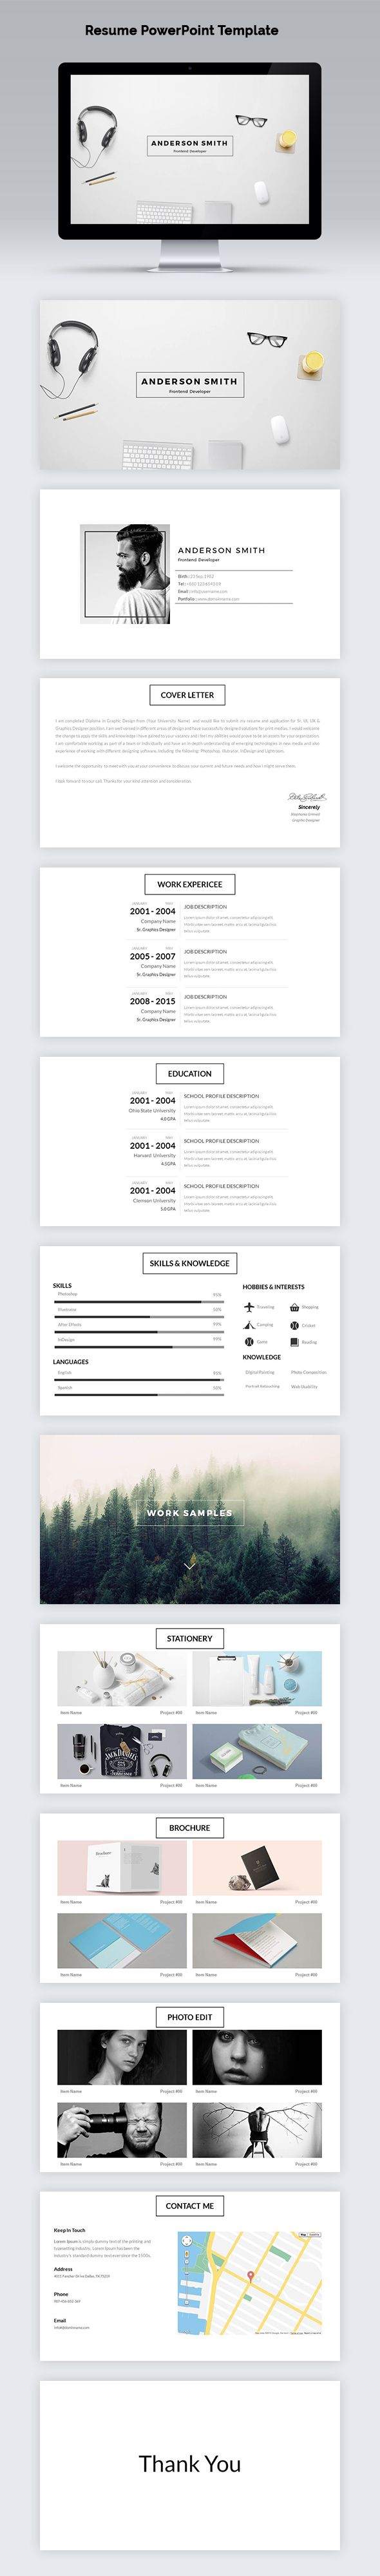 #Resume #PowerPoint Template - PowerPoint Templates #Presentation Templates Download here: https://graphicriver.net/item/resume-powerpoint-template/19746004?ref=alena994